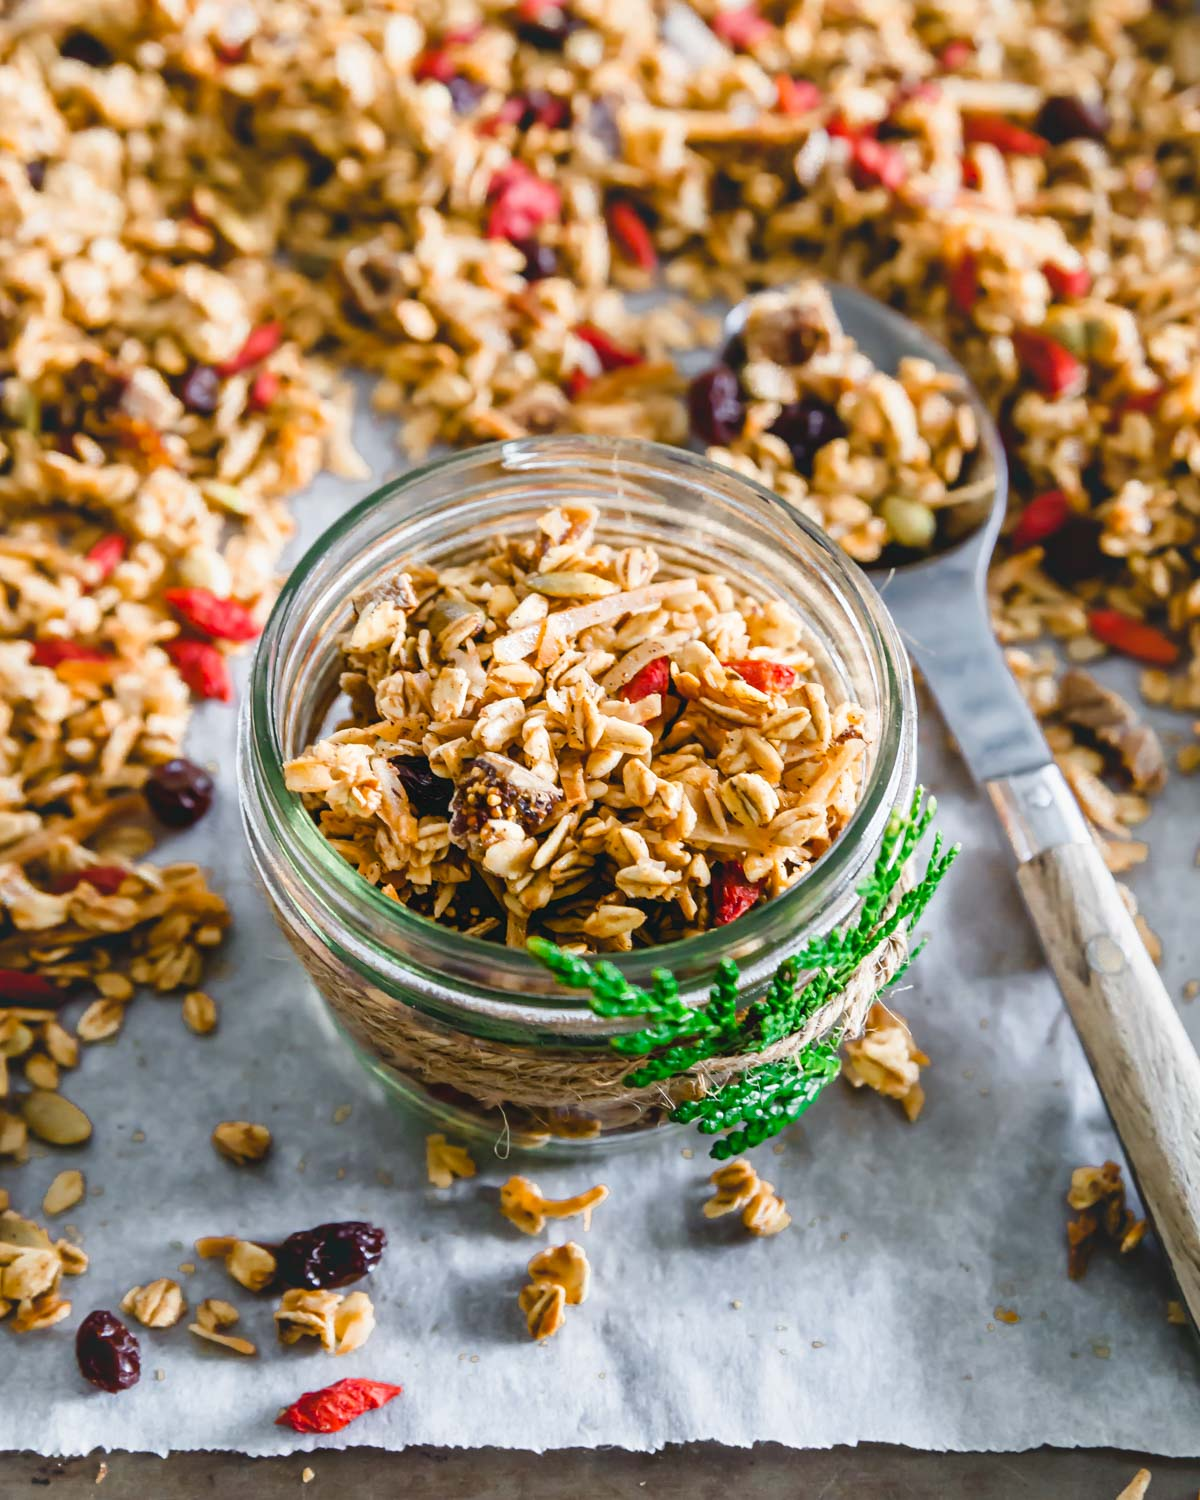 Homemade nut free granola is great for gifting since it's gluten-free, vegan and made without any nuts!